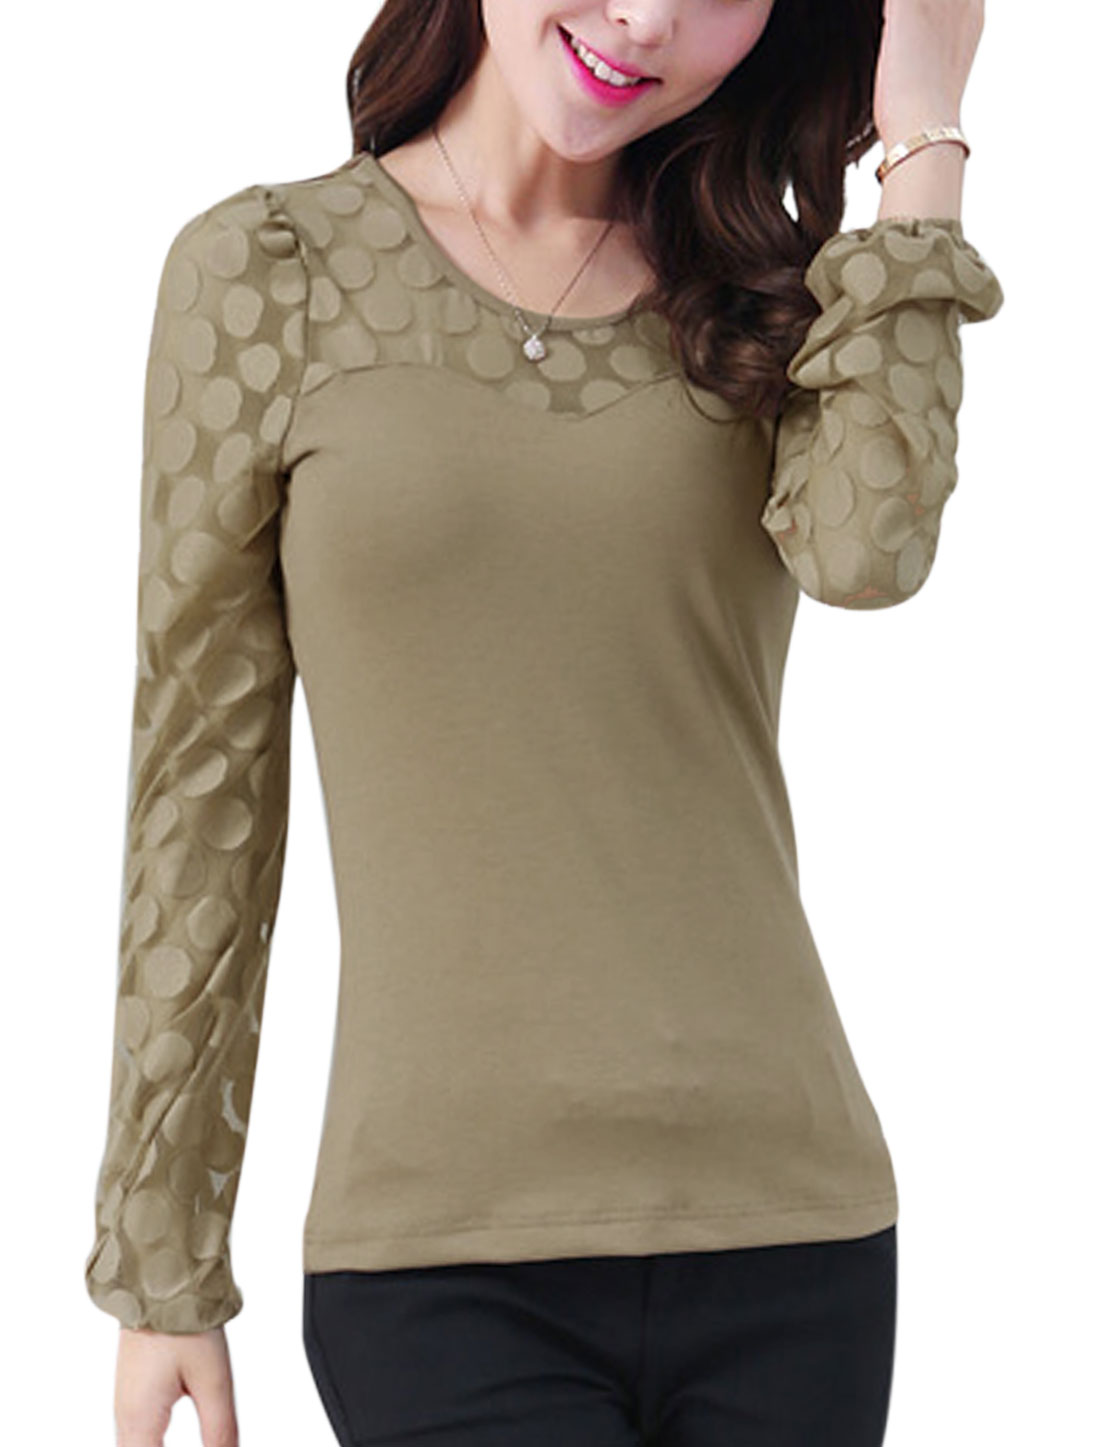 Lady Slipover Long Sleeve Stretchy Cuff Skinny Top Khaki S